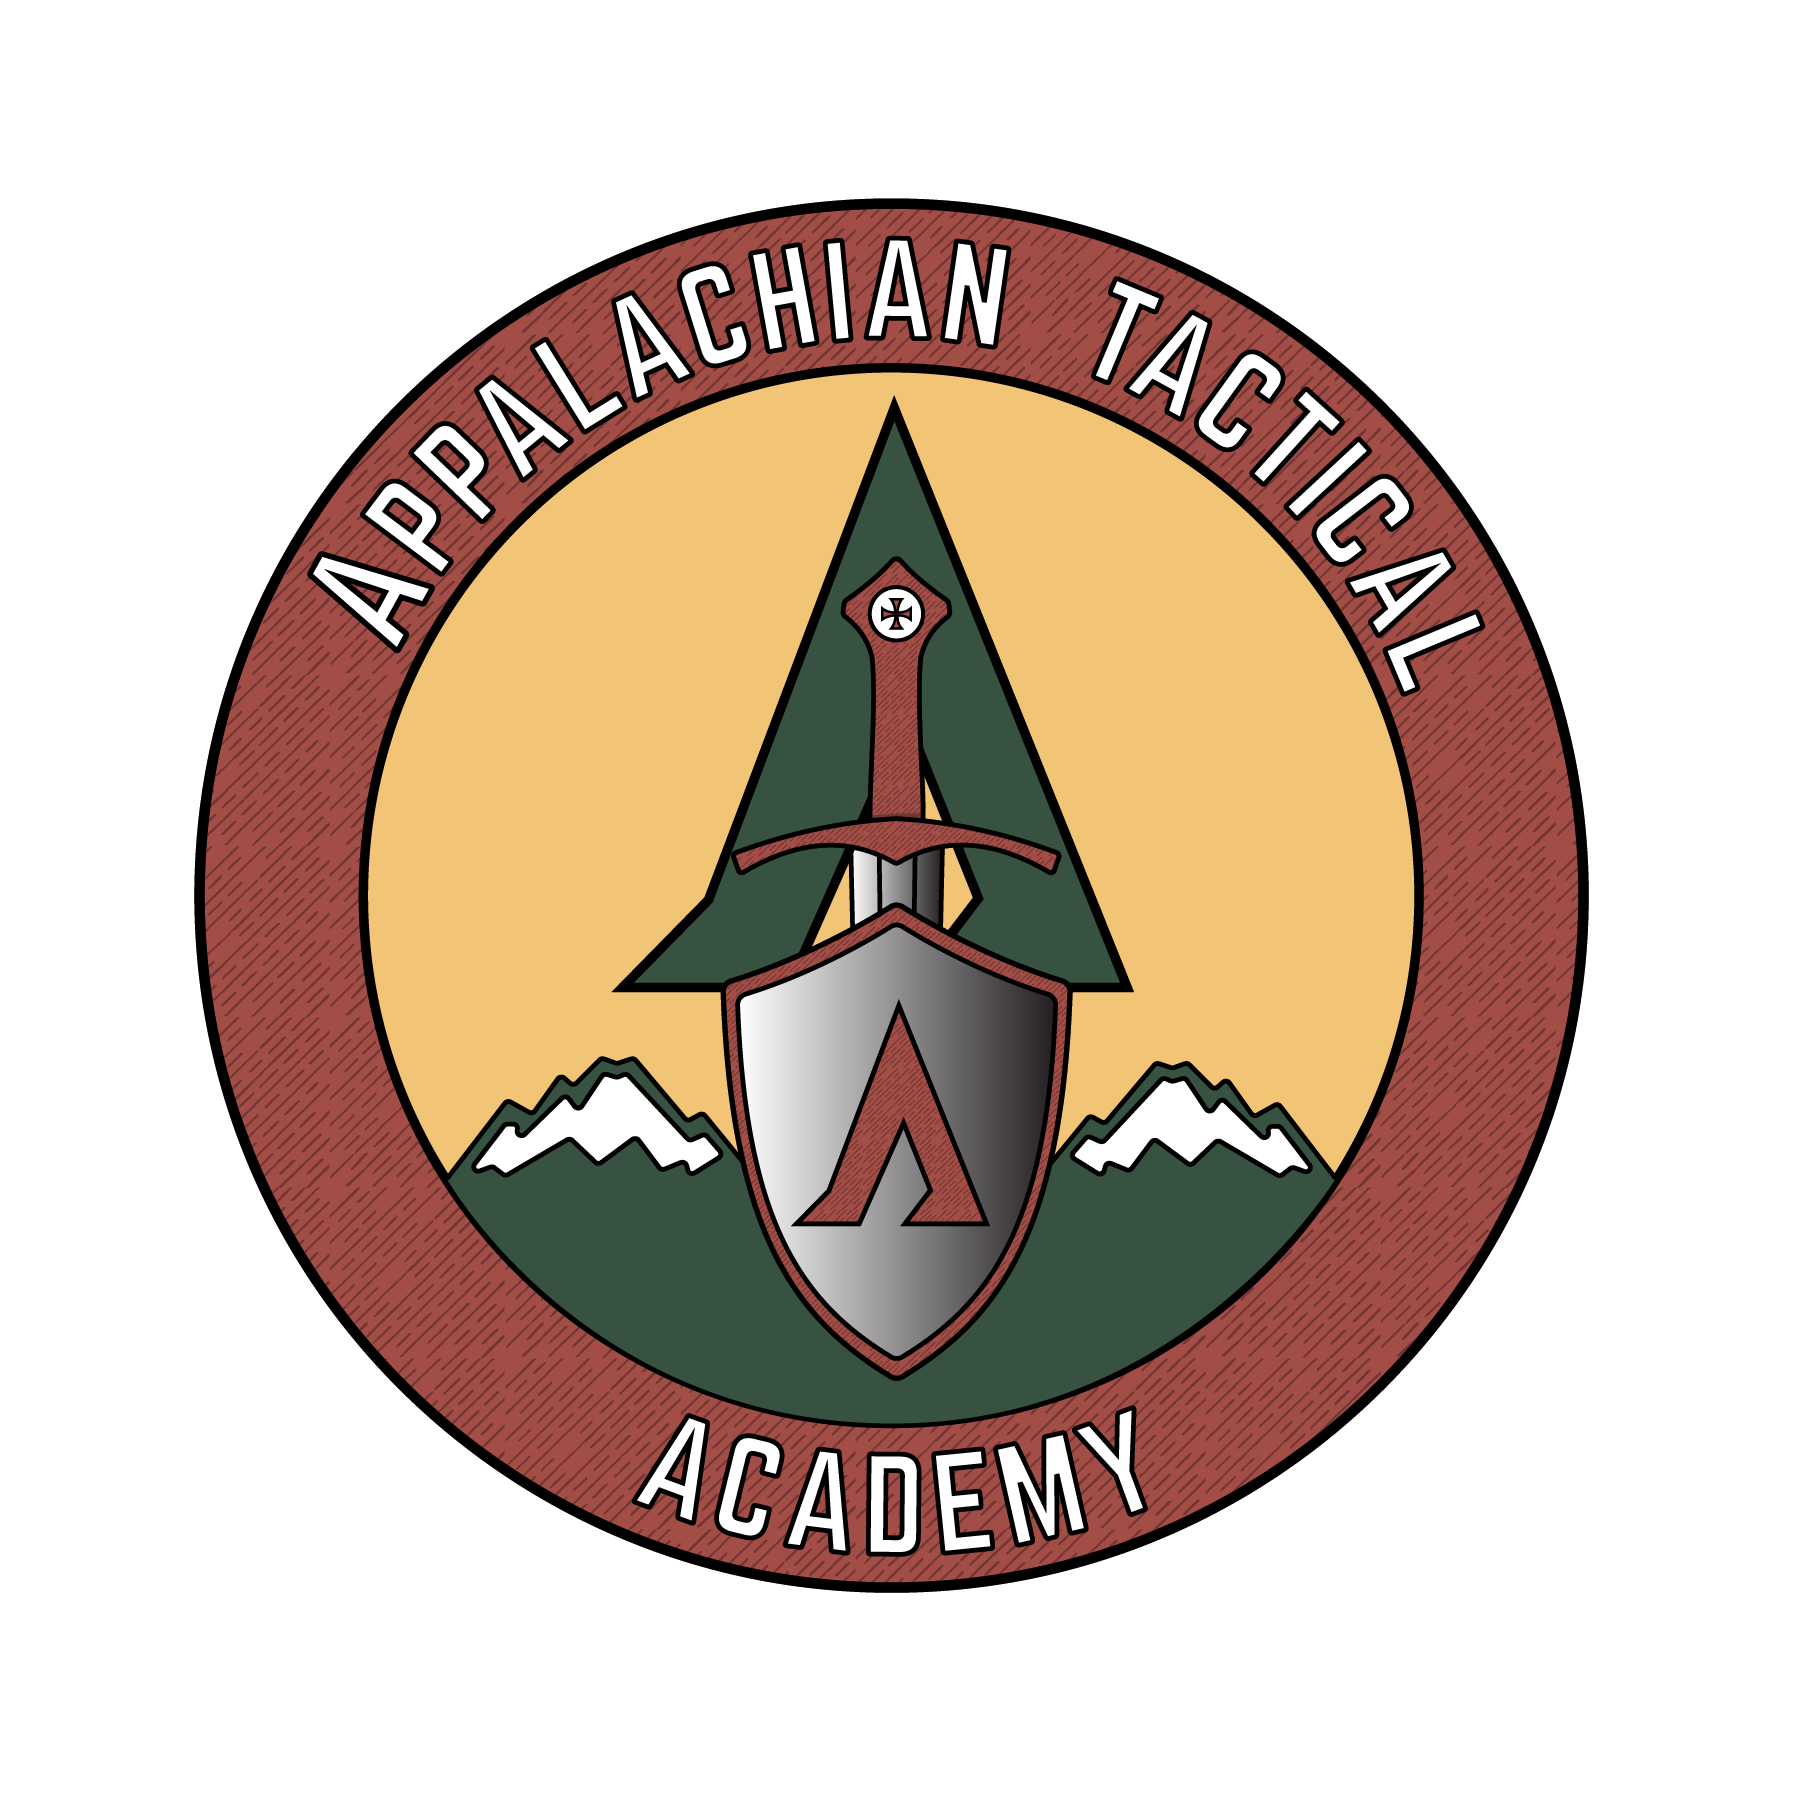 Appalachian Tactical Academy